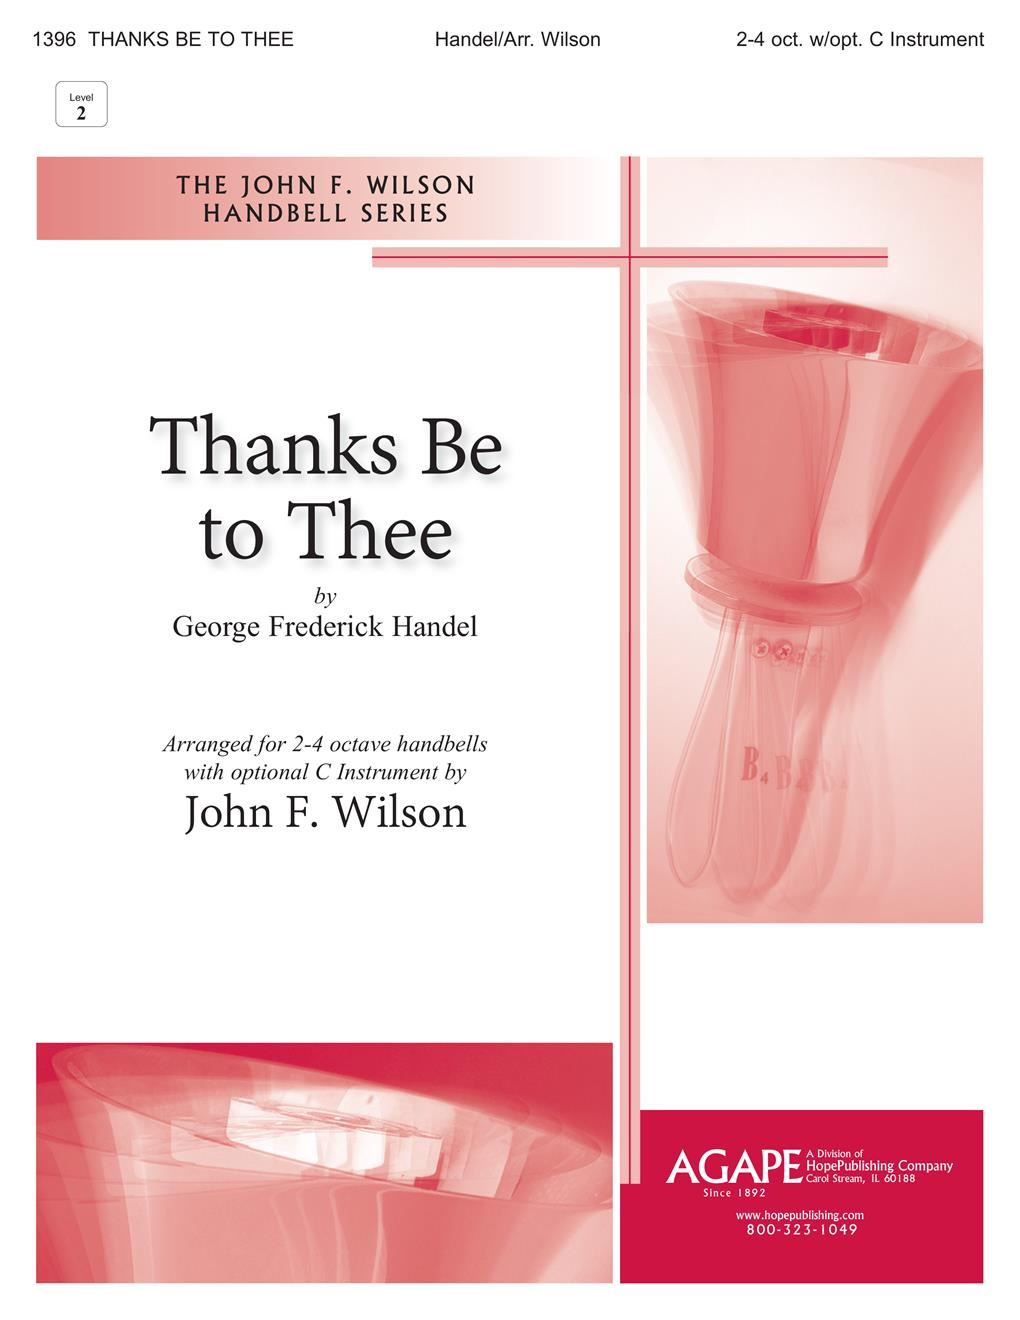 Thanks Be to Thee - 2-4 Oct. Cover Image